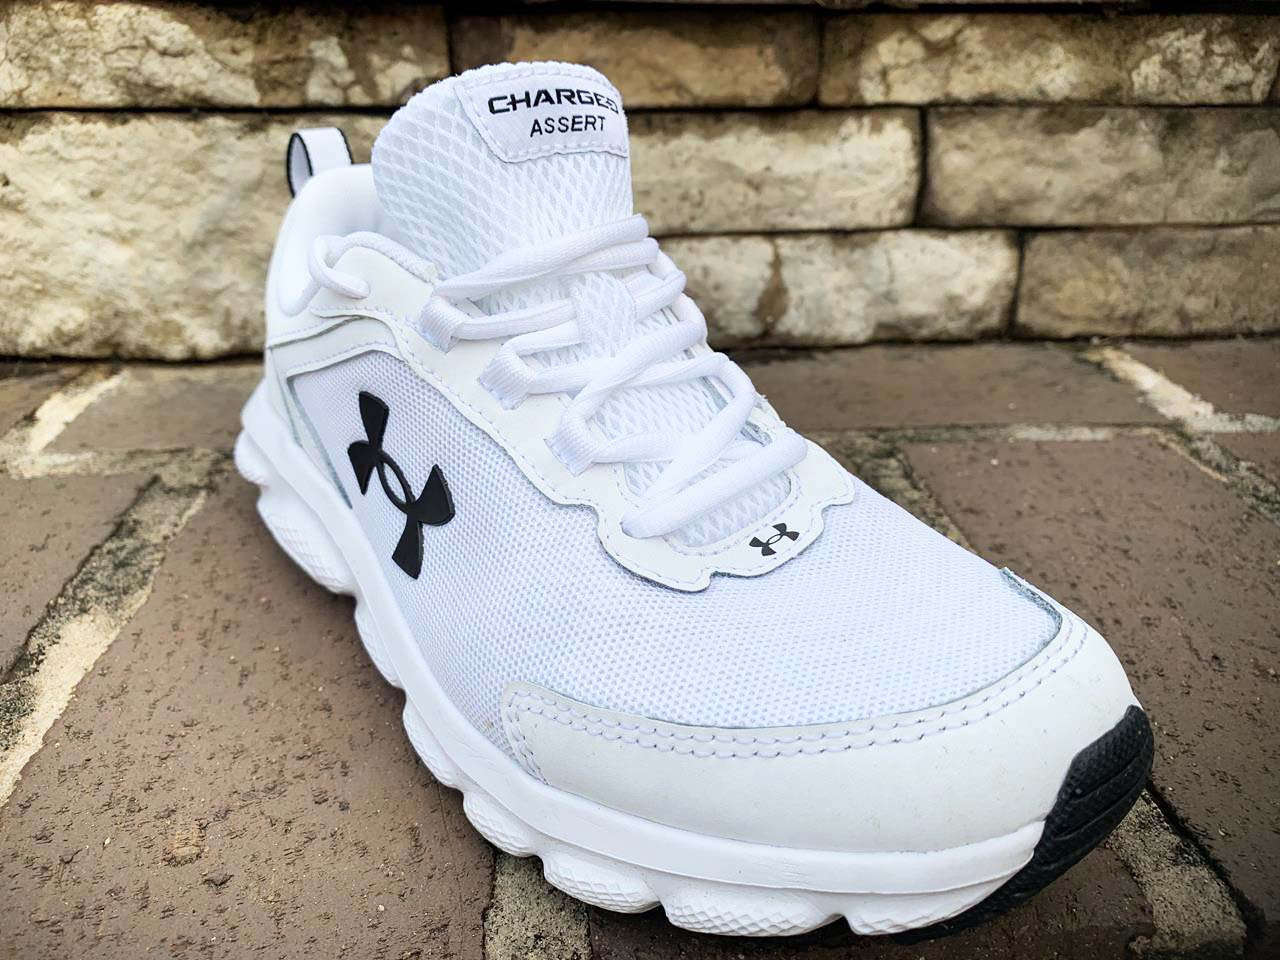 Under Armour Charged Assert 9 - Toe+Lateral